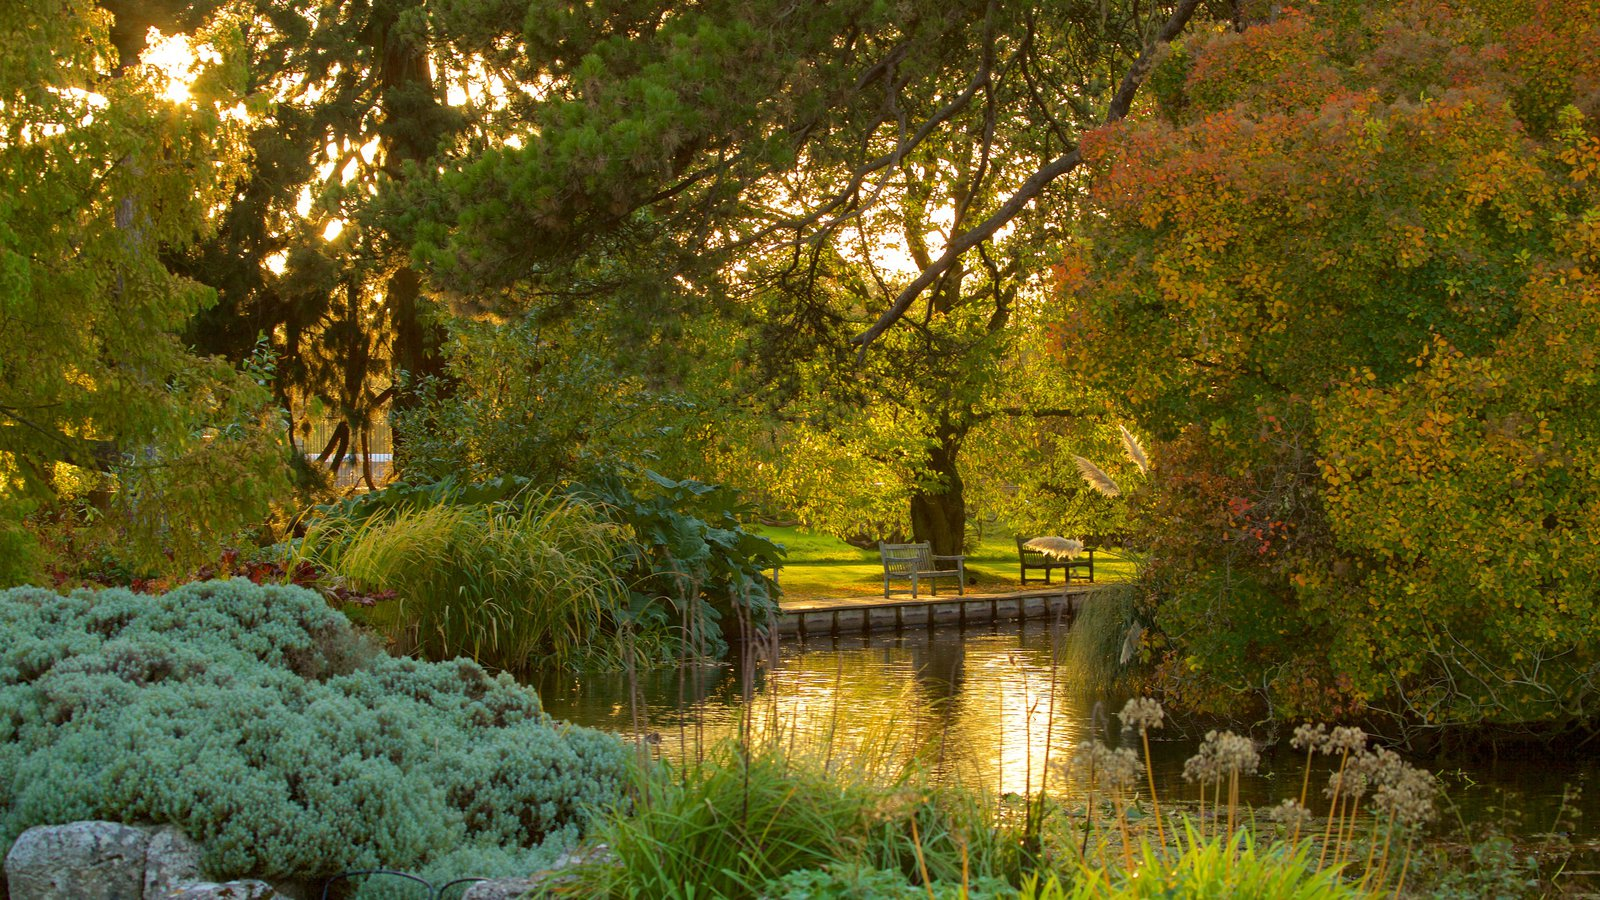 University Botanic Gardens featuring a river or creek, a garden and forest scenes